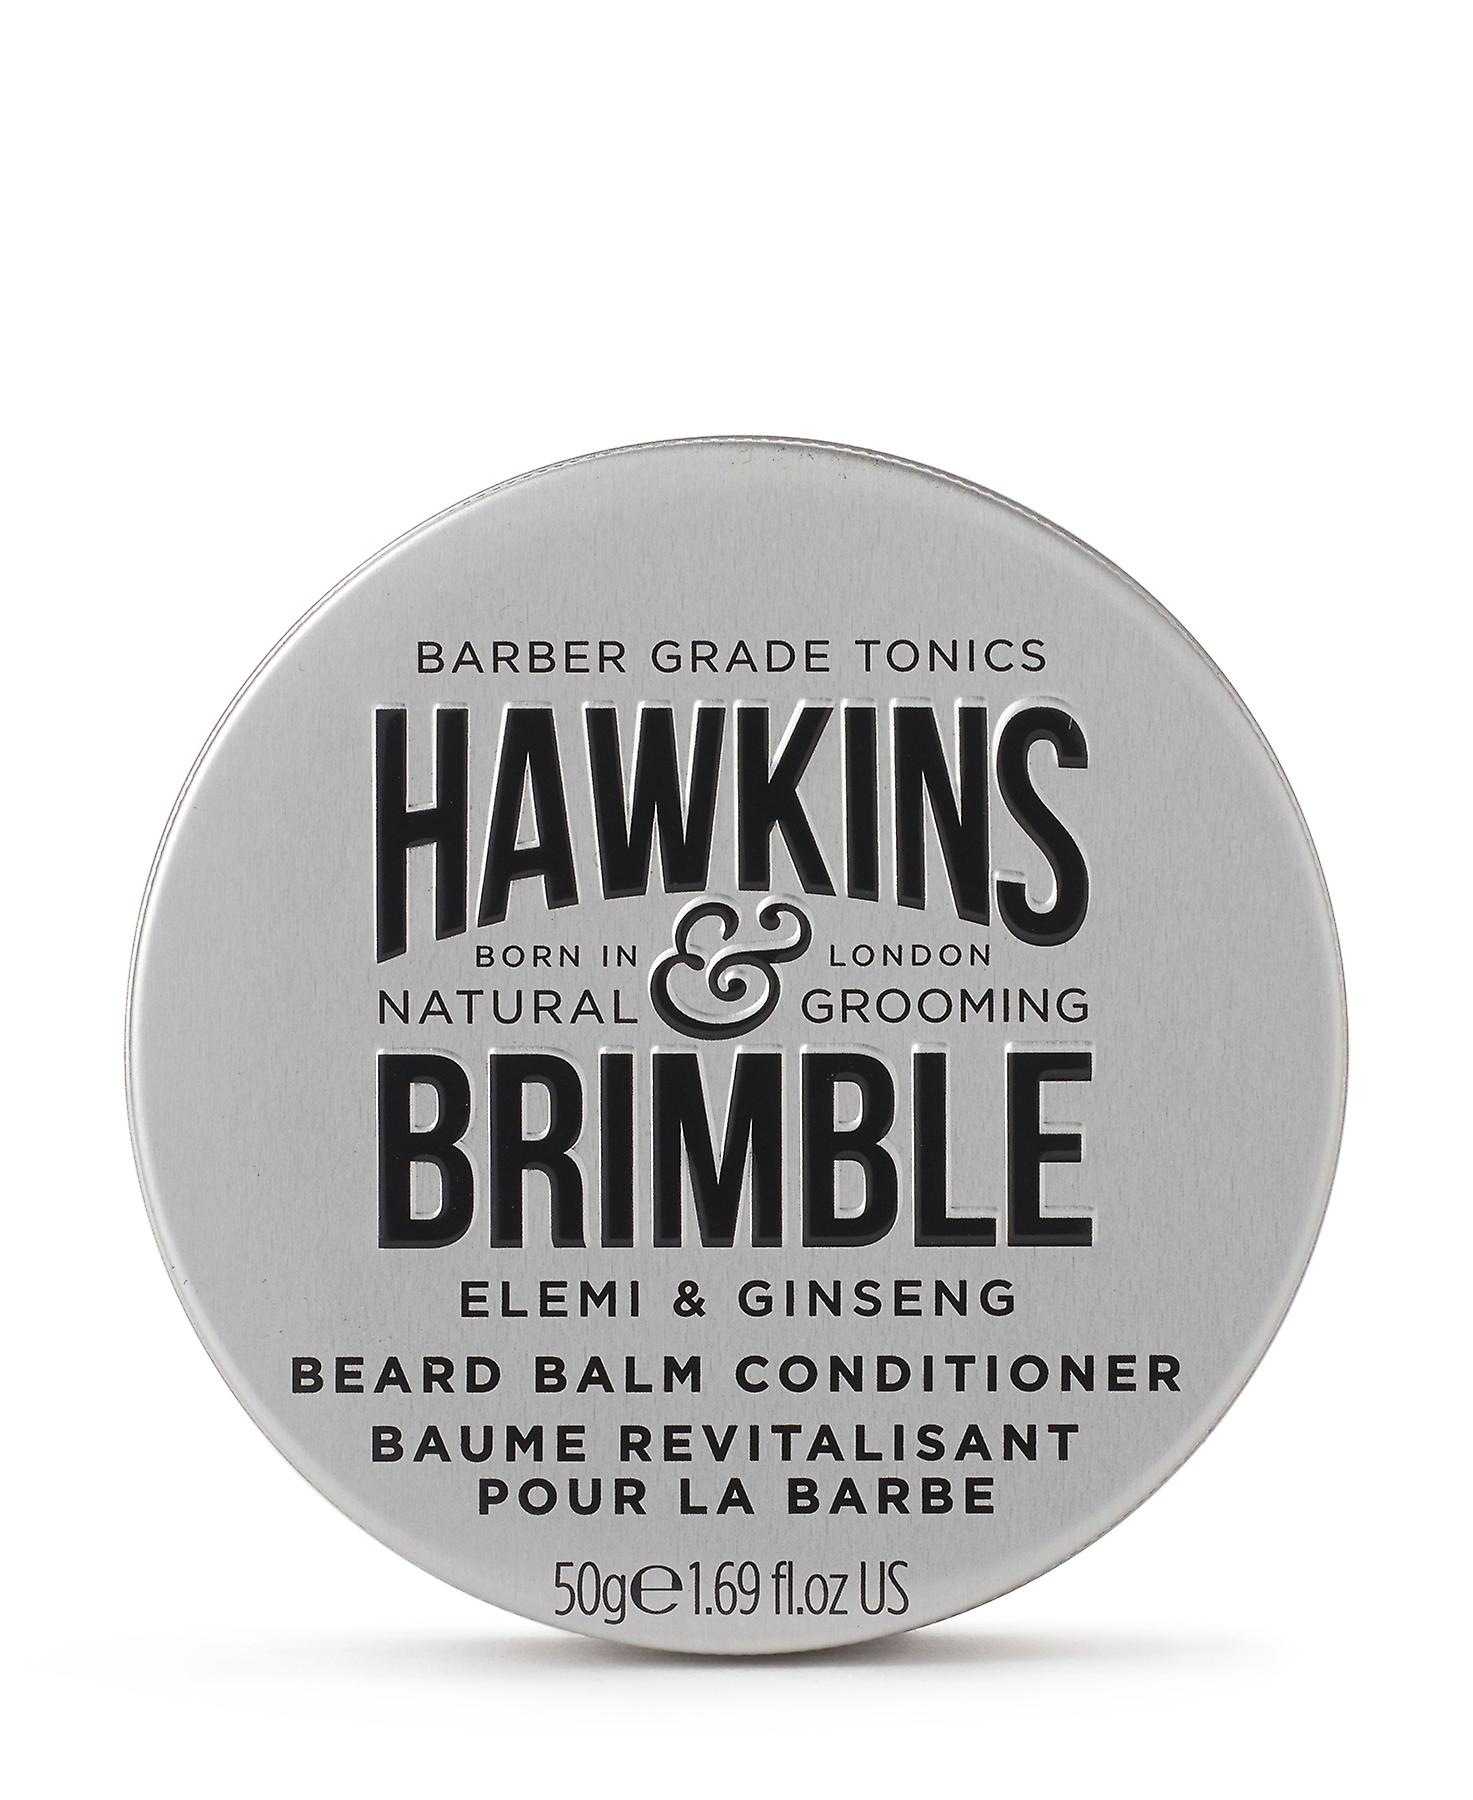 Hawkins & Brimble Bart Balsam Conditioner (50ml)